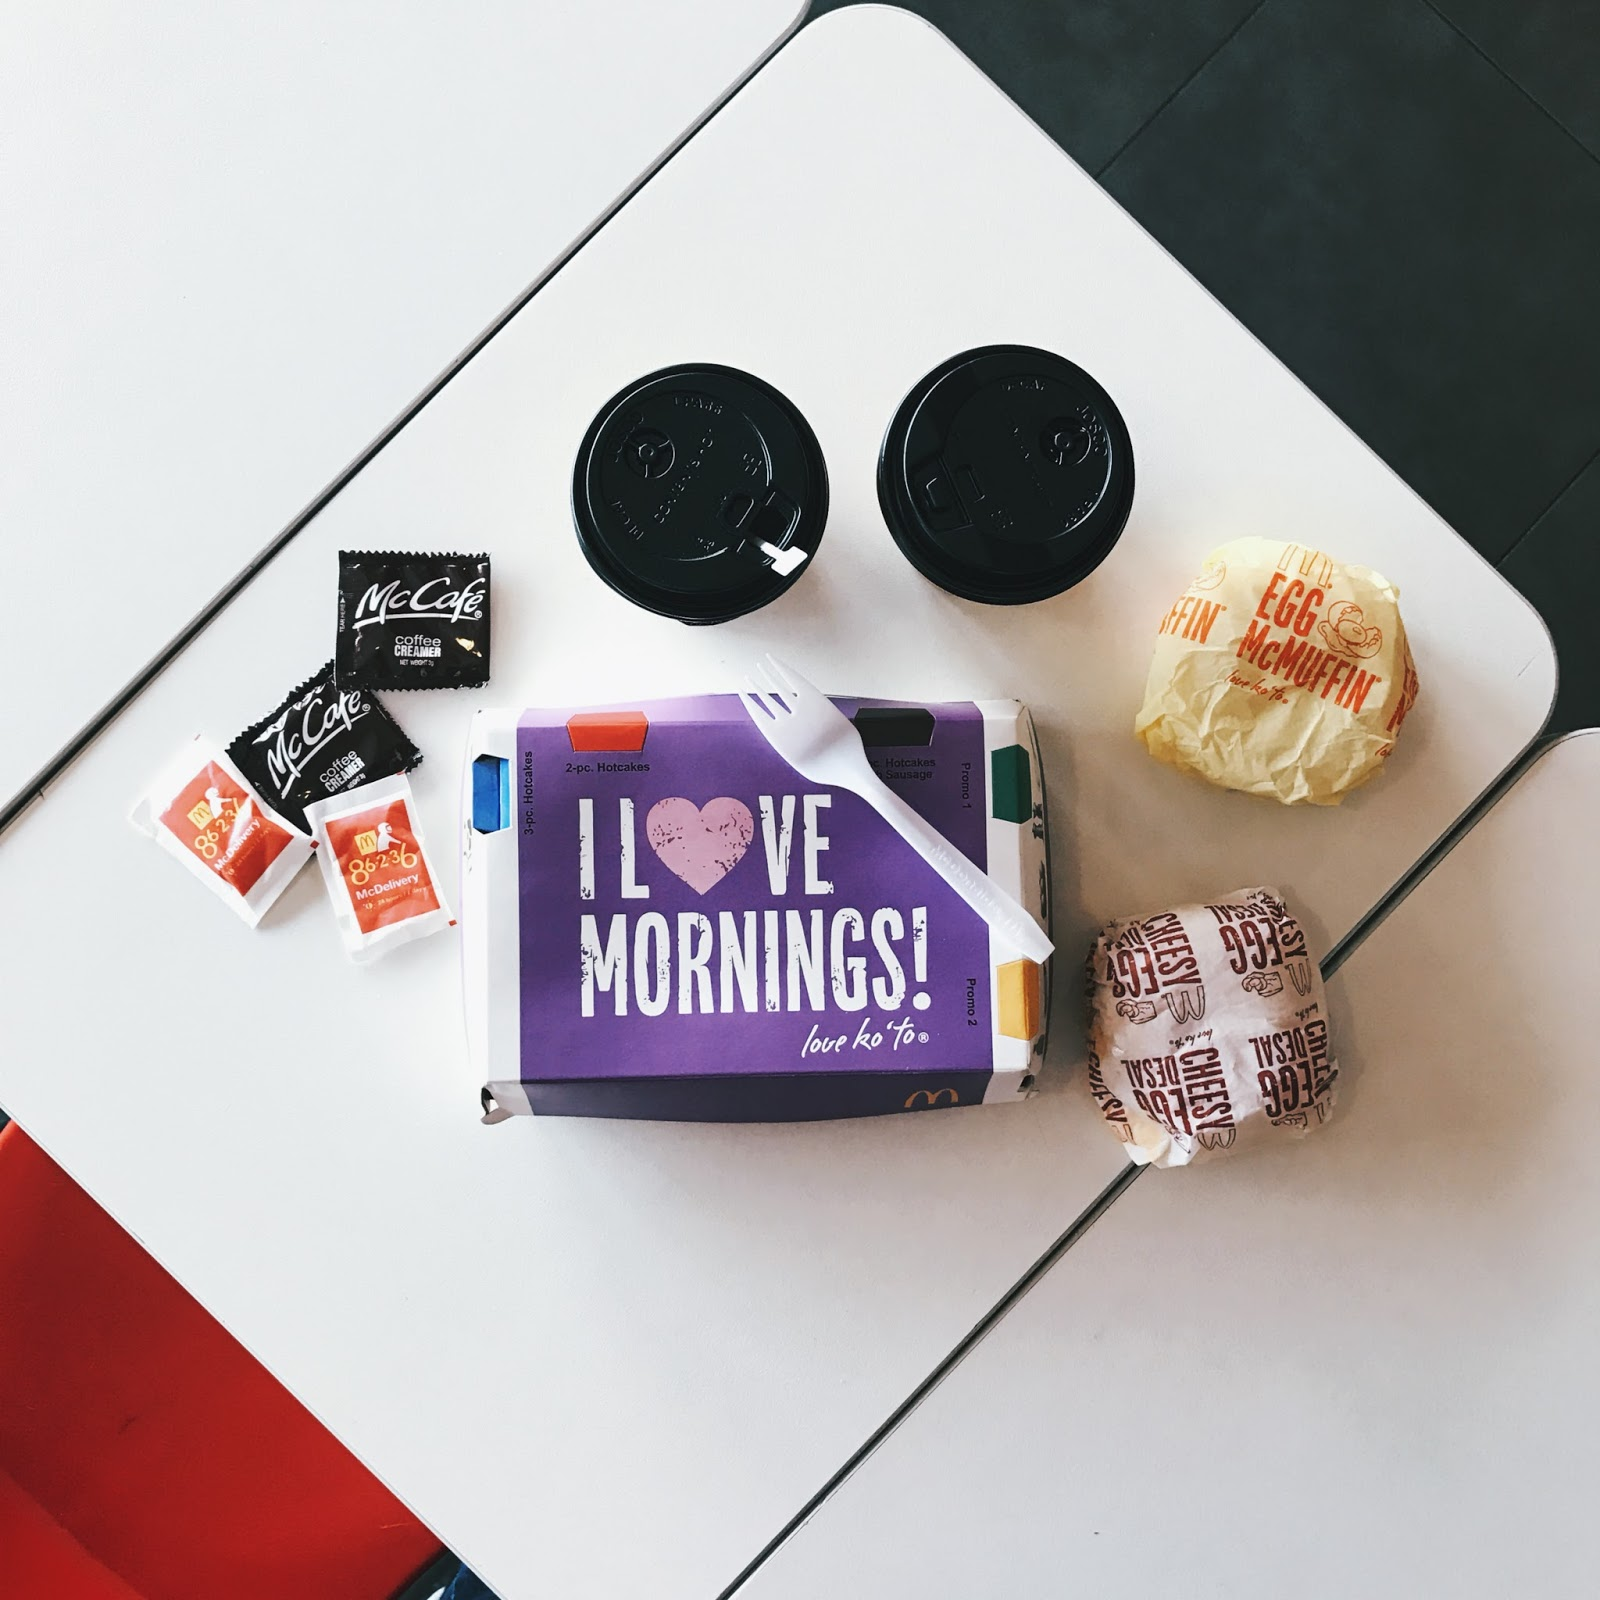 McDonald's 5th National Breakfast Day